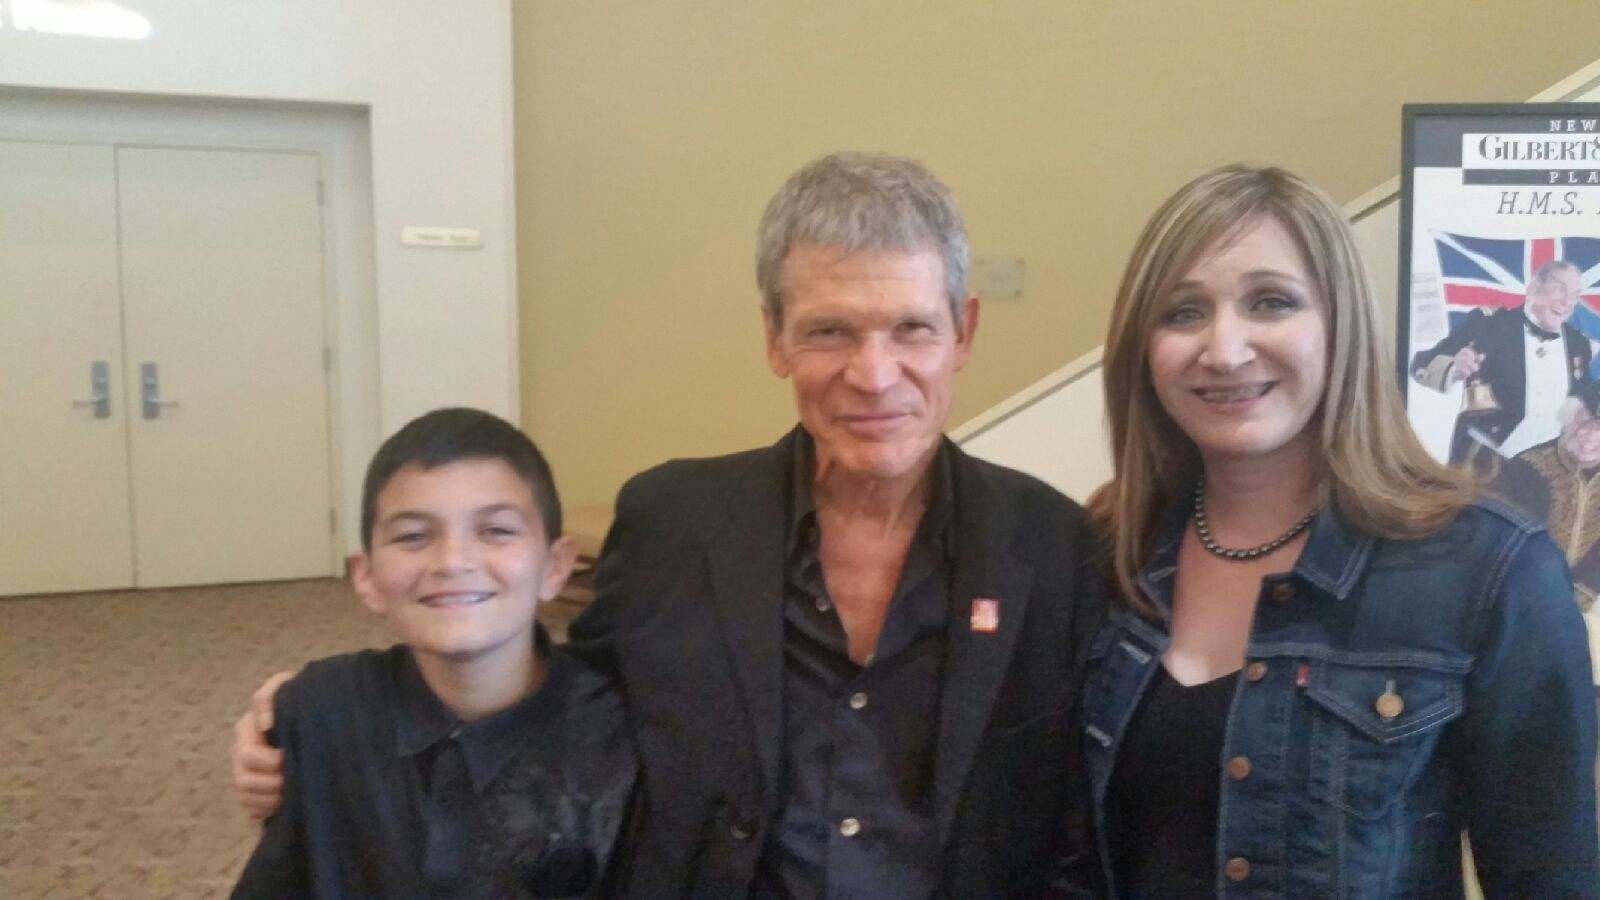 Isaac and his mom with David Sanborn